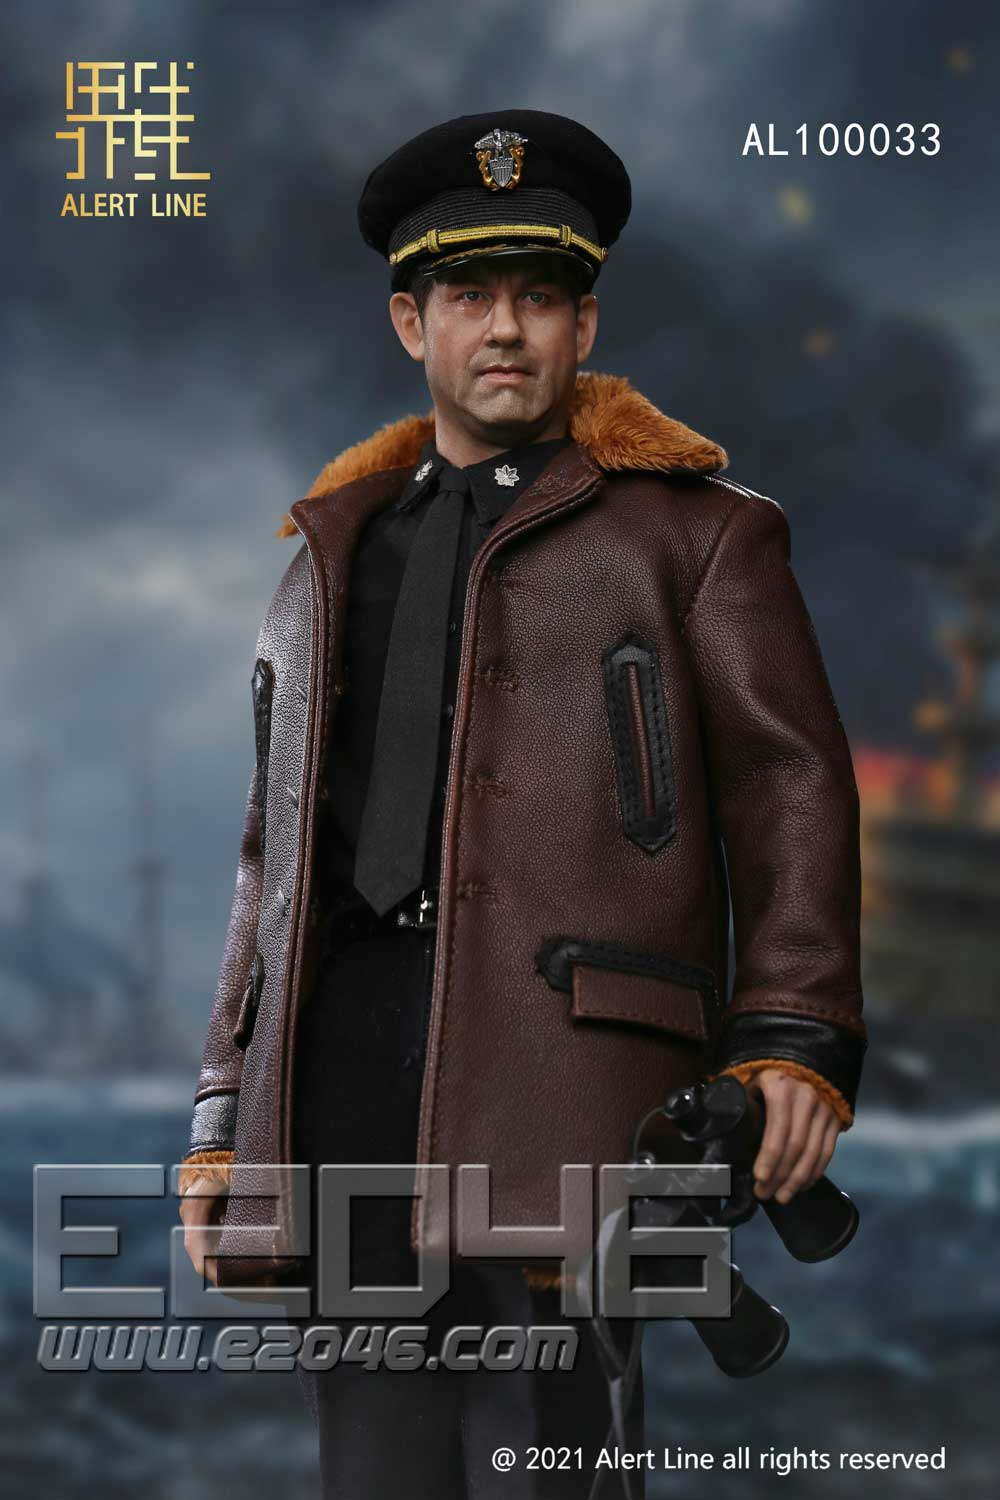 U.S. Navy Destroyer Commander (DOLL)